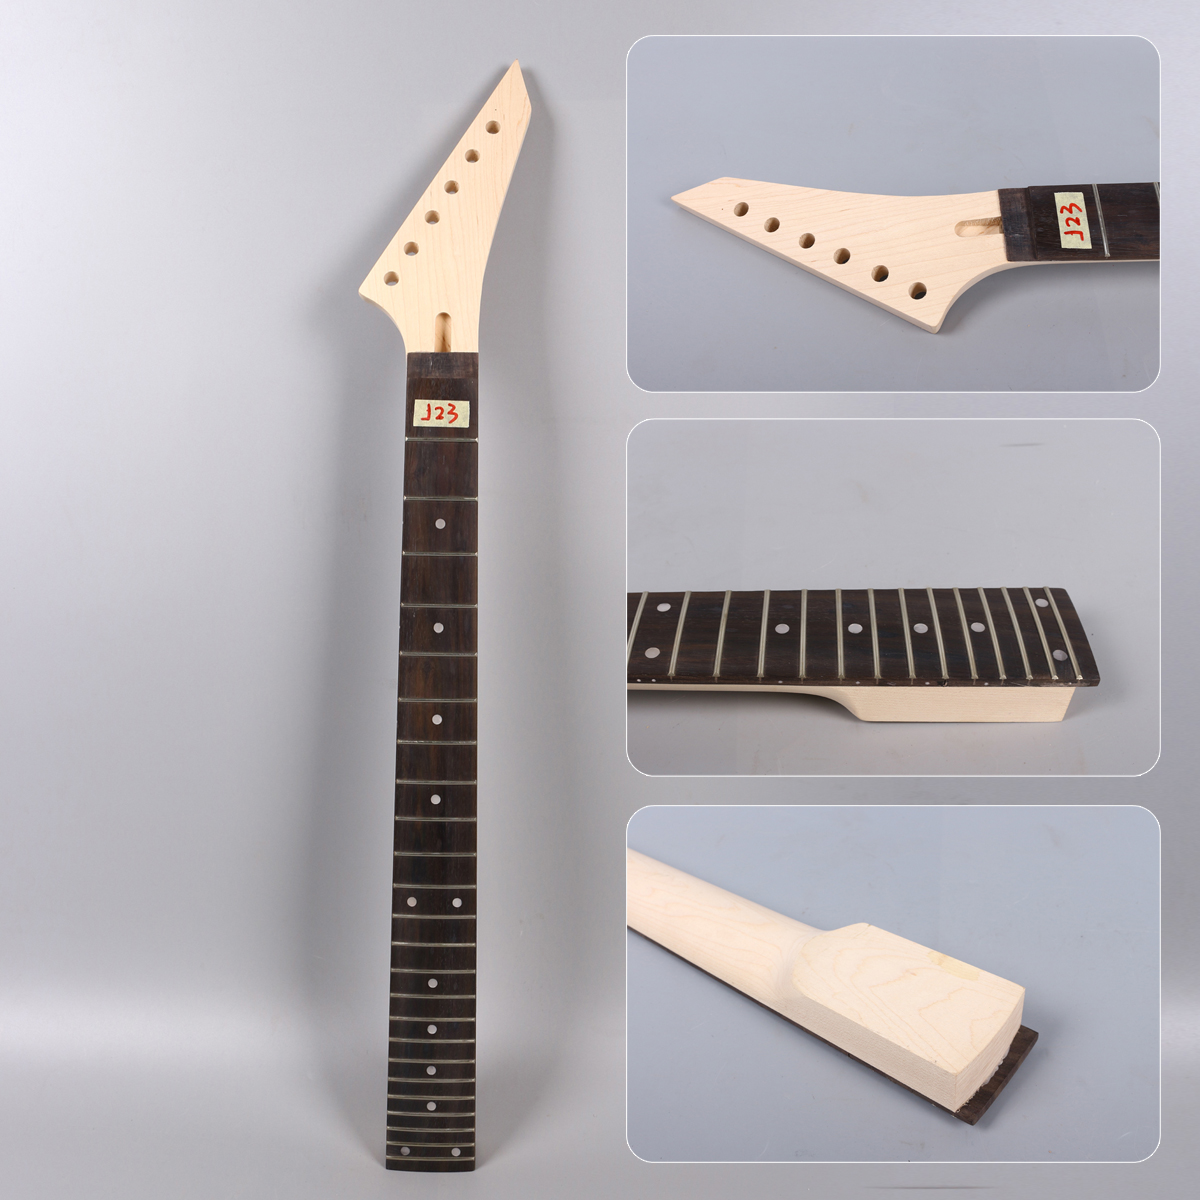 <font><b>24</b></font> <font><b>fret</b></font> 25,5 zoll Elektrische Gitarre <font><b>Neck</b></font> locking mutter ahorn + Palisander griffbrett Unfinished image